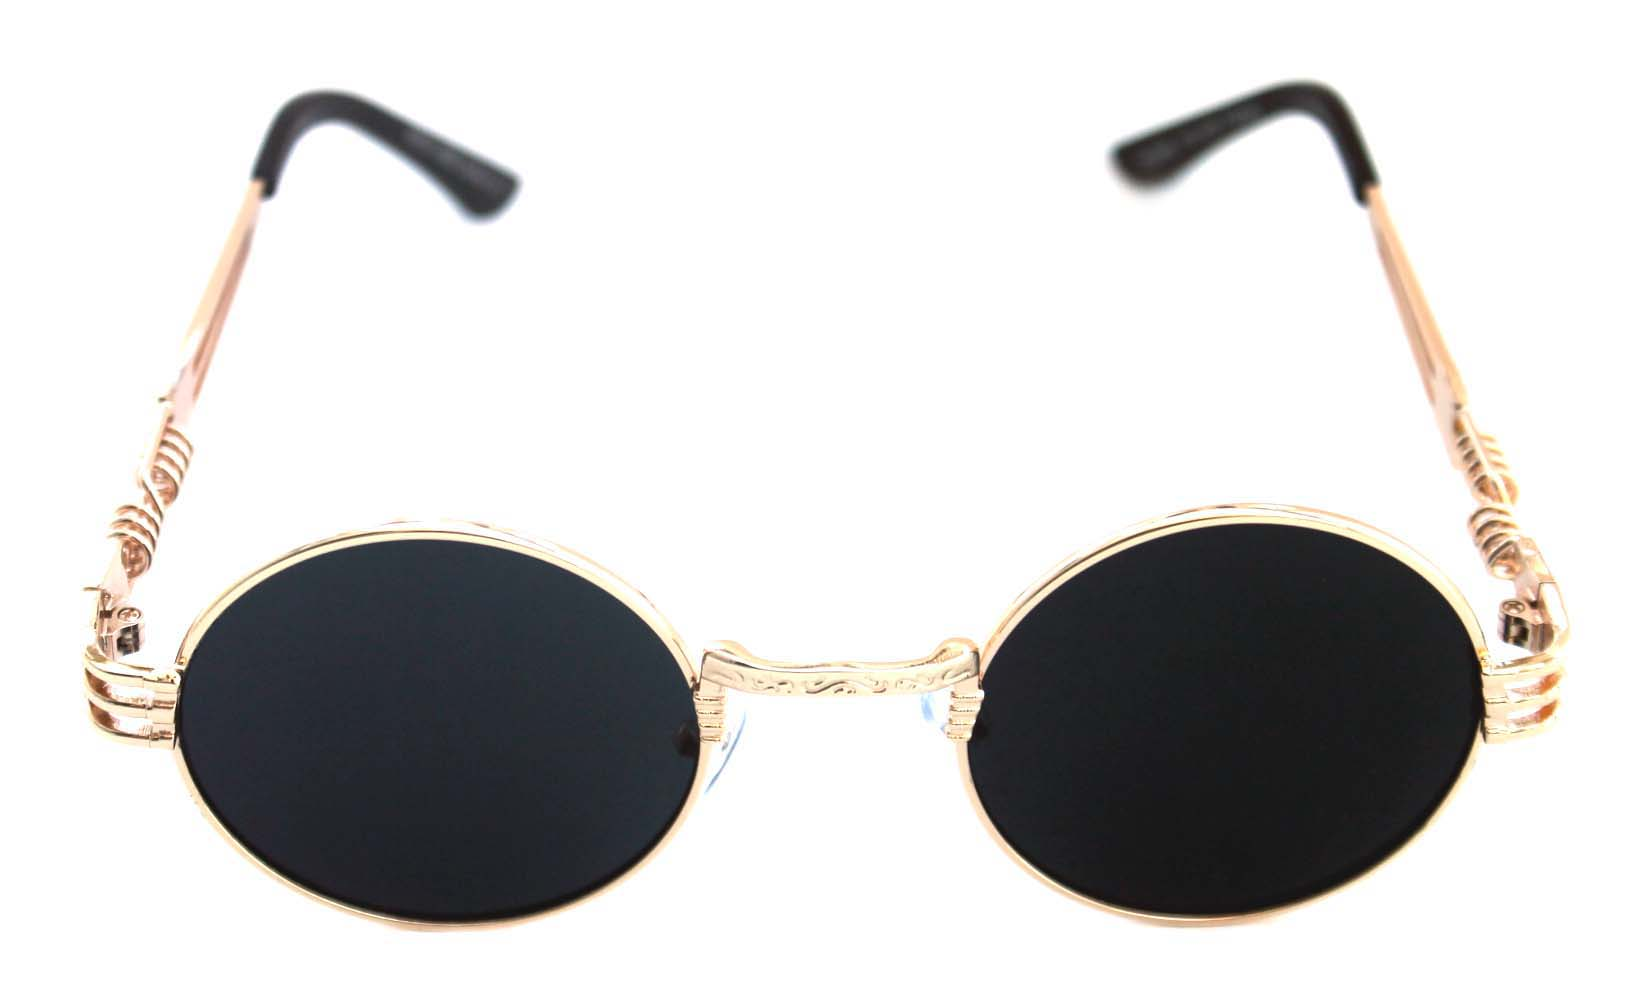 008b2eb3ccc ... Men s Women s Round Shape Bad and Boujee Hip Hop Swag Quavo Metal  Sunglasses Retro Gold Frame ...